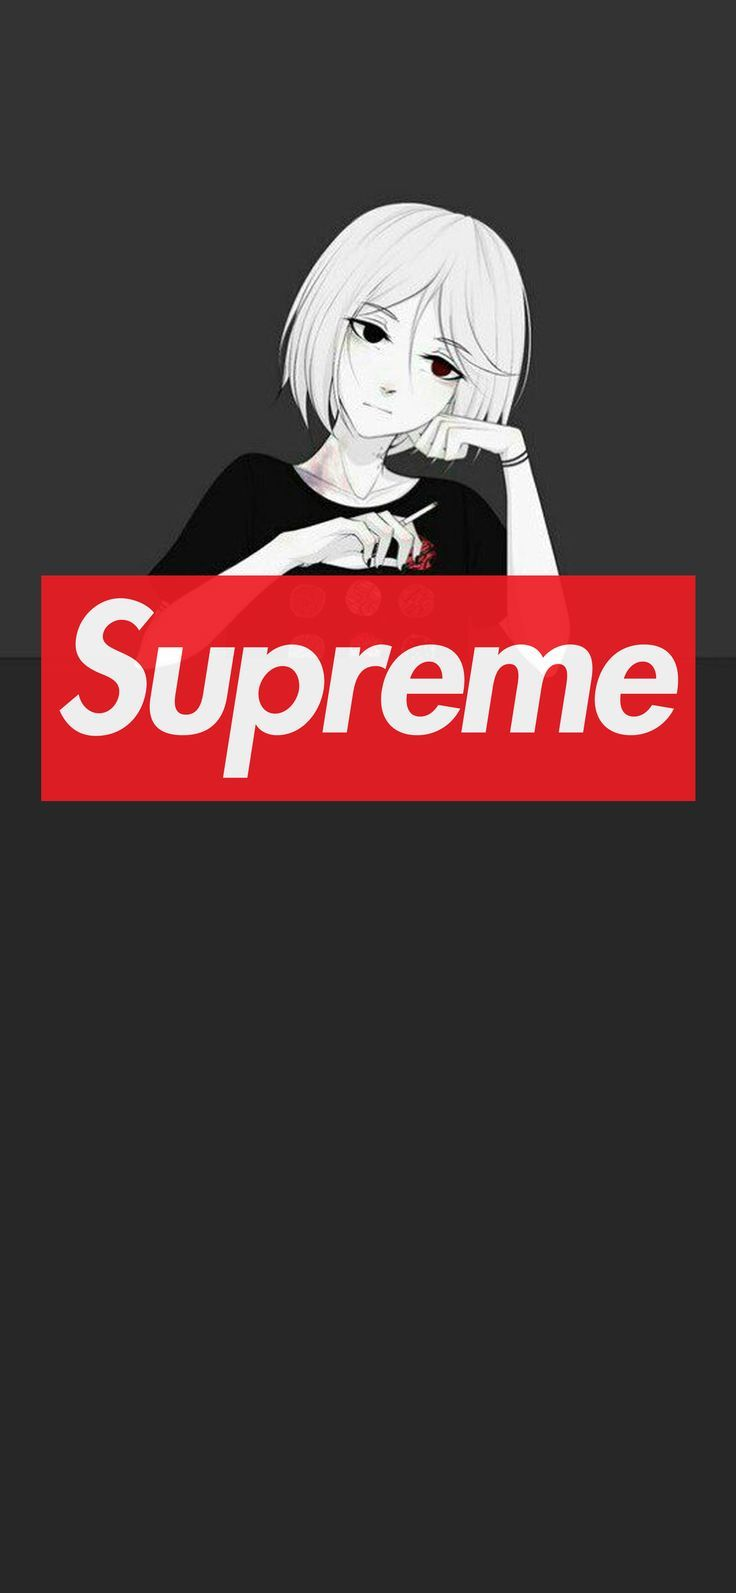 Supreme Wallpaper Iphone Cool Click Here To Download Supreme Wallpaper Iphone Supreme Wallpaper Anime Wallpaper Download Anime Wallpaper Iphone